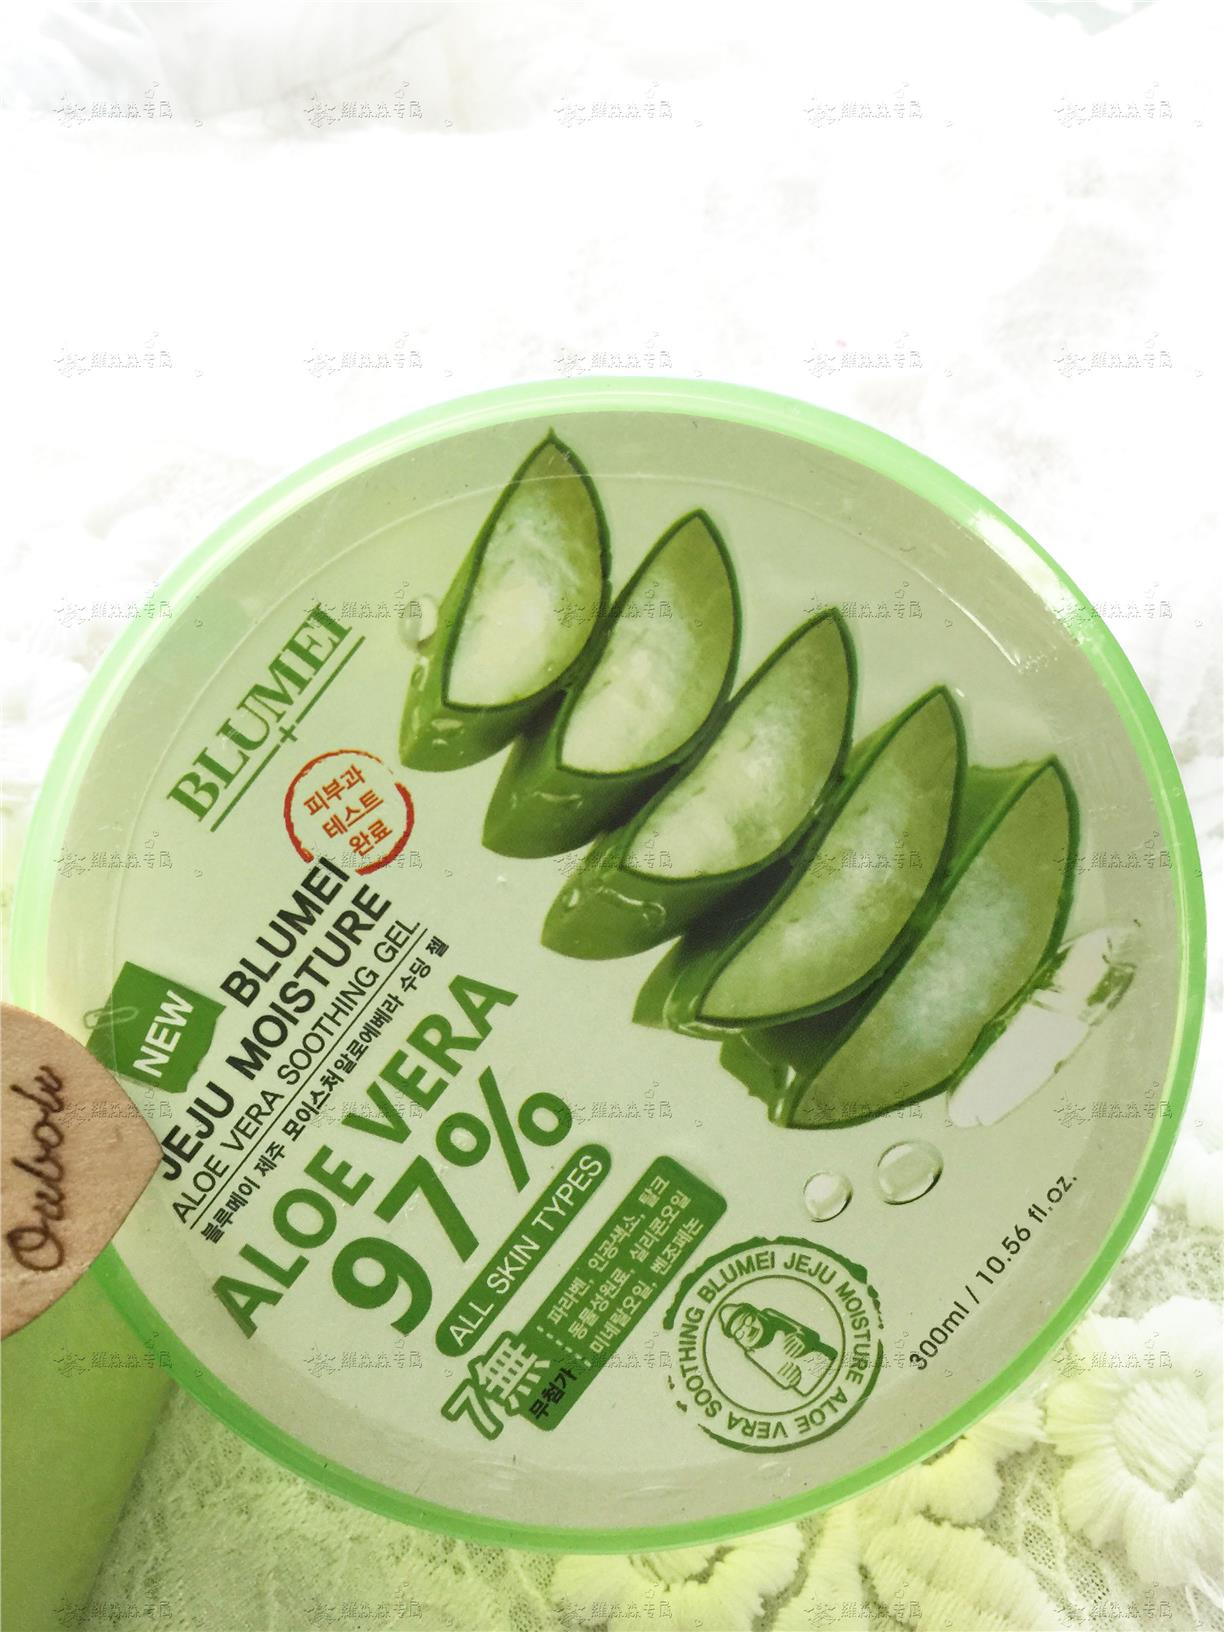 97% Pure Aloe Vera Gel from JEJU Island ( South Korea ) ( 7 none )